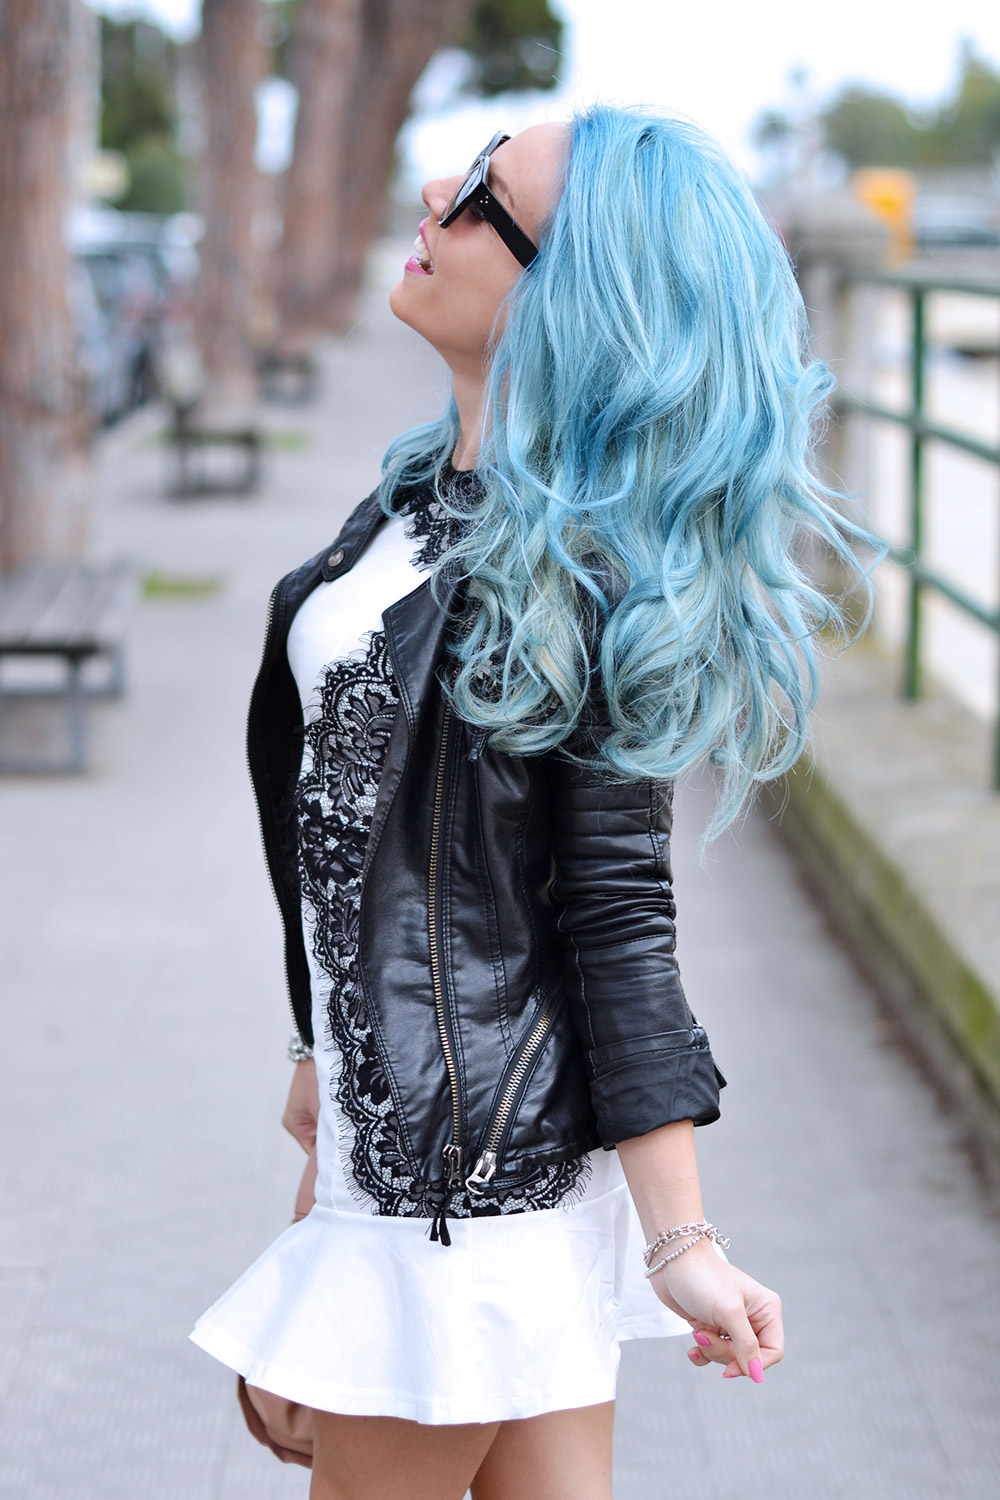 Occhiali firmati in sconto, Sunglasses shop Italia, Sunglasses shop affidabile, saldi occhiali Rayban, pastel blue hair, capelli colorati tendenza primavera estate 2015, outfit italian fashion blogger It-Girl by Eleonora Petrella